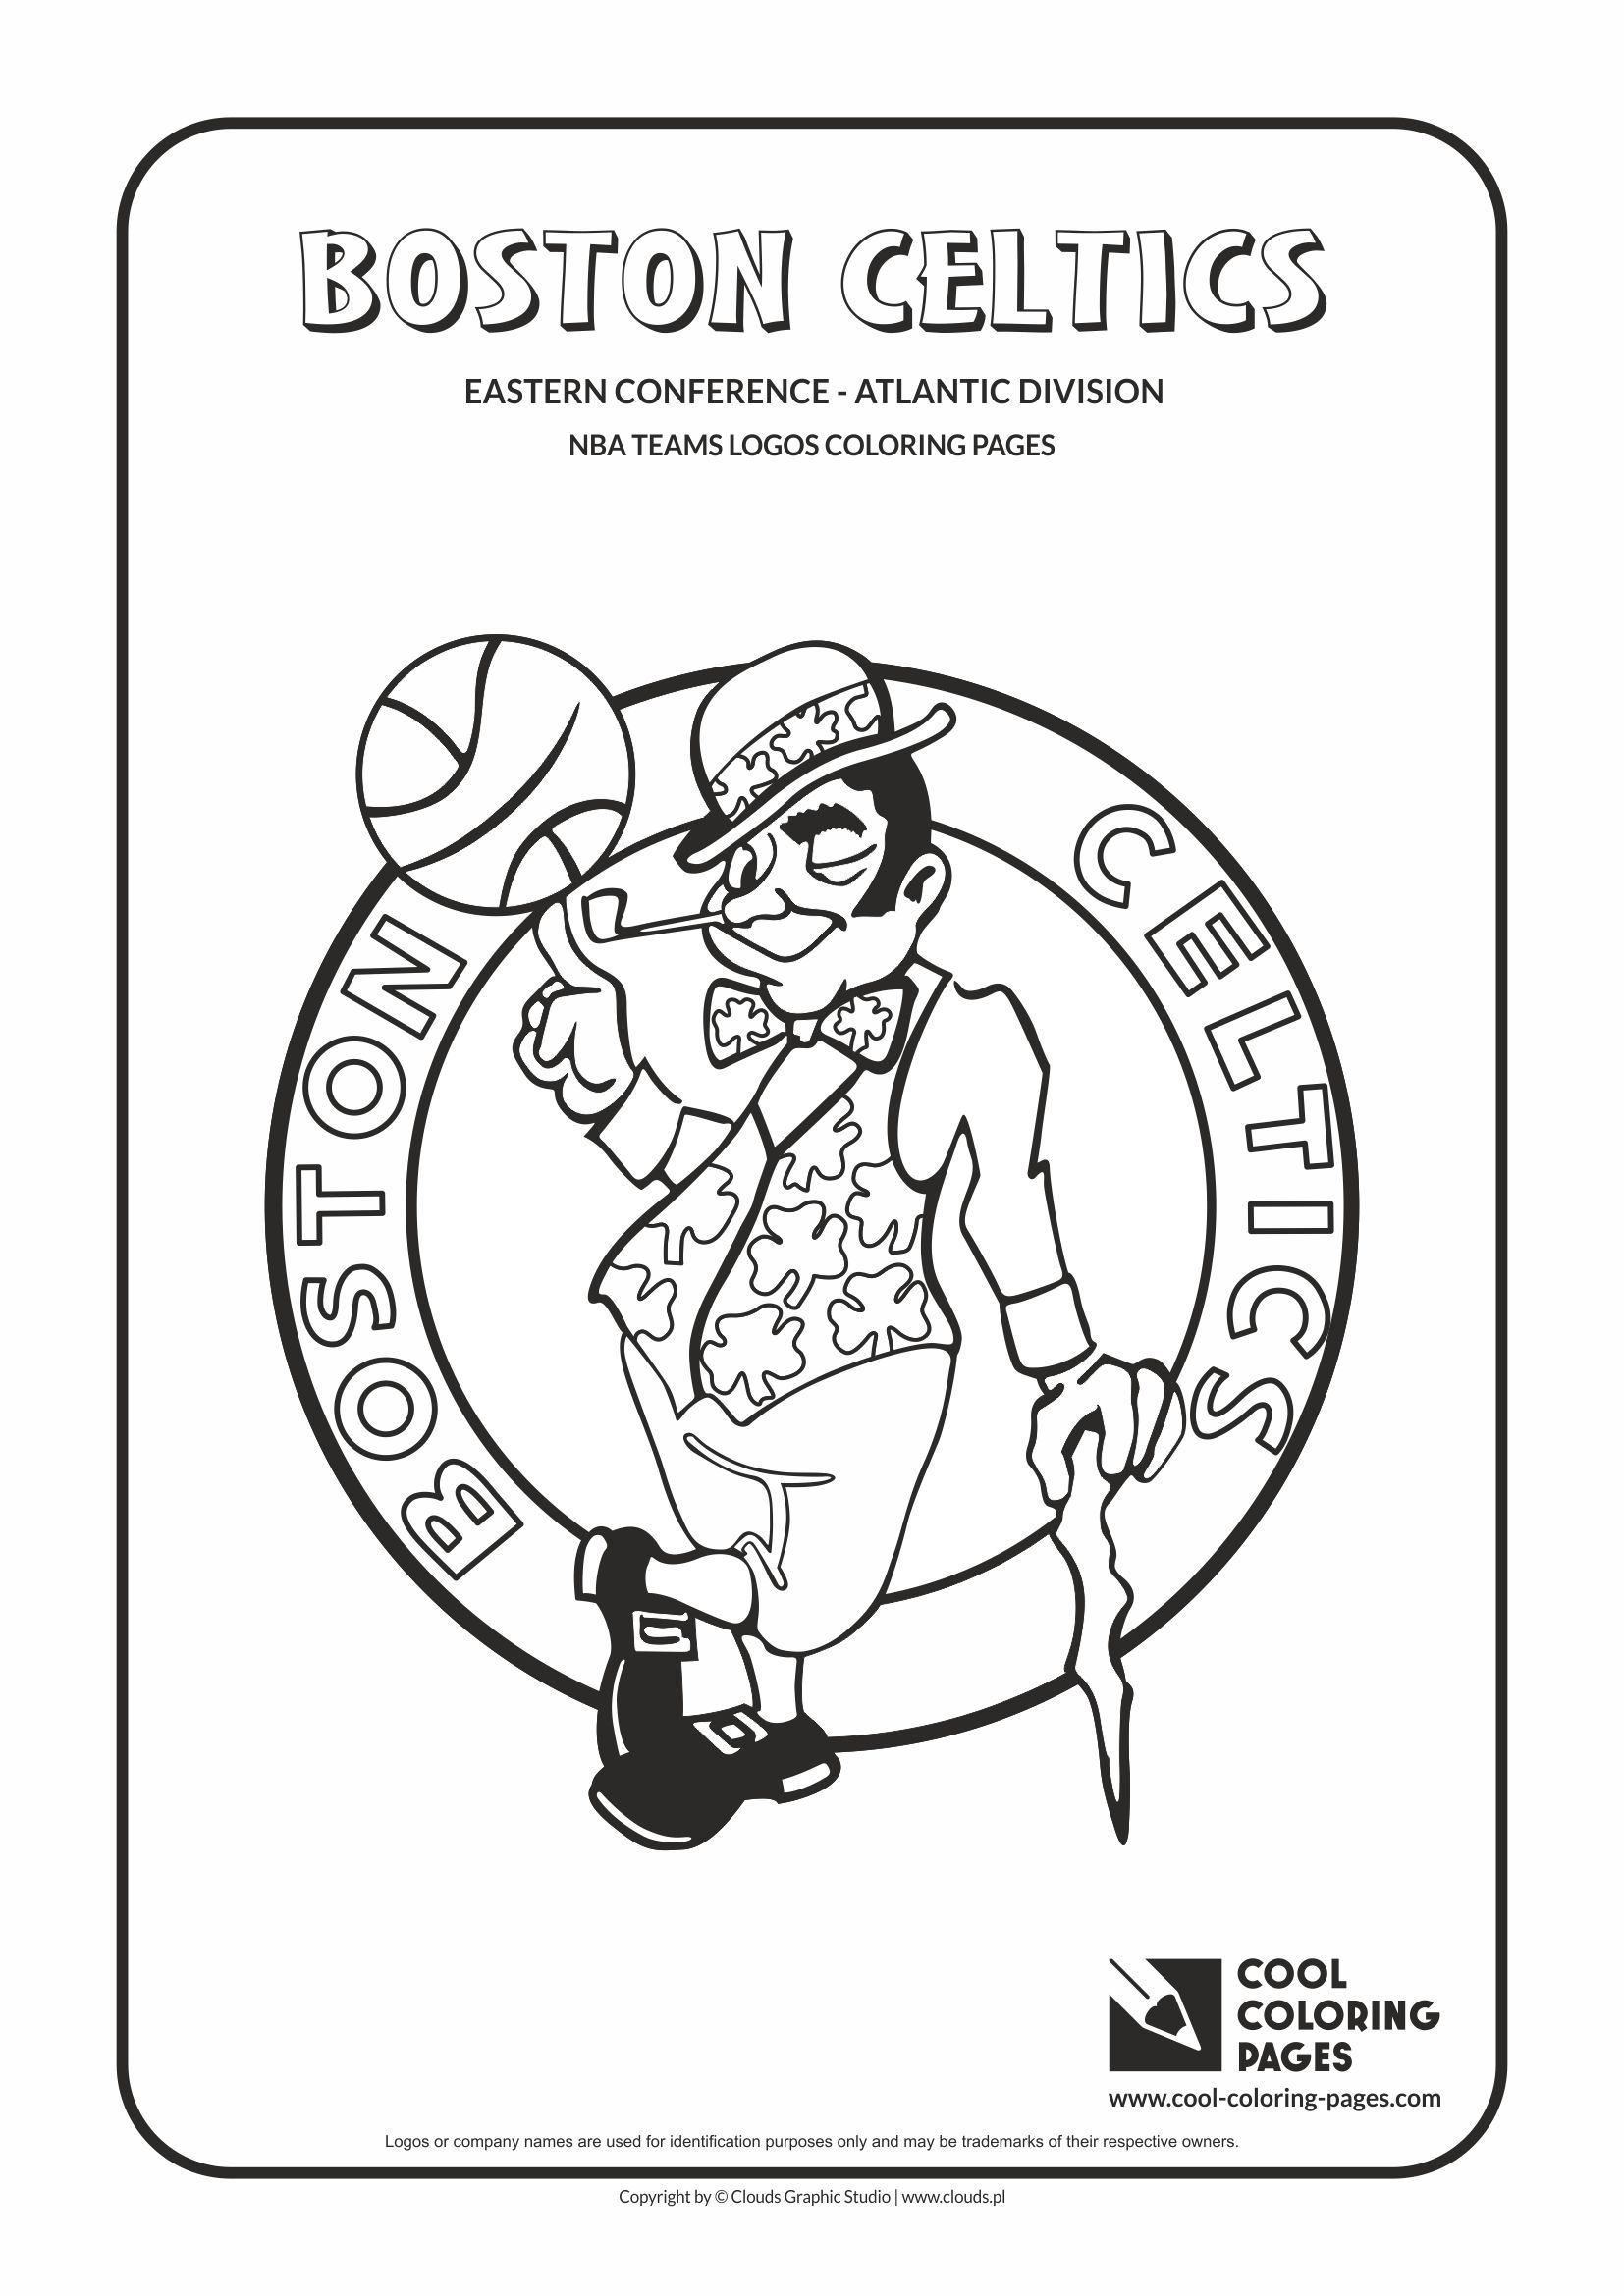 cool coloring pages nba teams logos boston celtics logo coloring page with